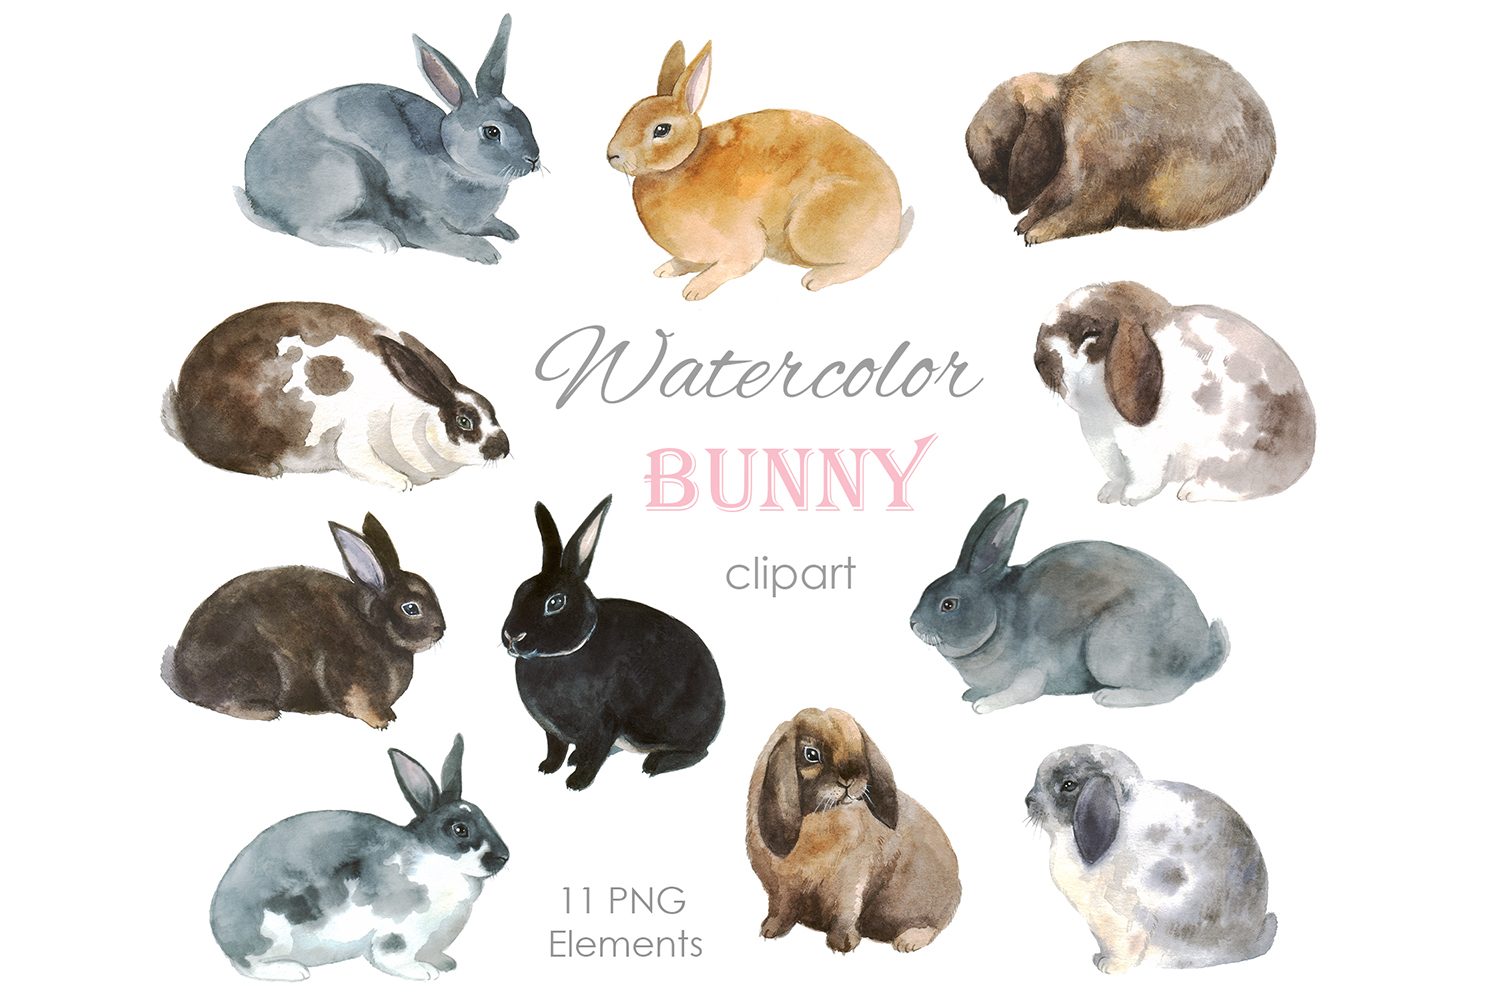 Watercolor Happy Easter Clipart,Easter Bunny Clip Art,Rabbit,Cute chicks,Easter Eggs,Spring Holiday,Nursery,Baby Shower,Easter basket,29 PNG